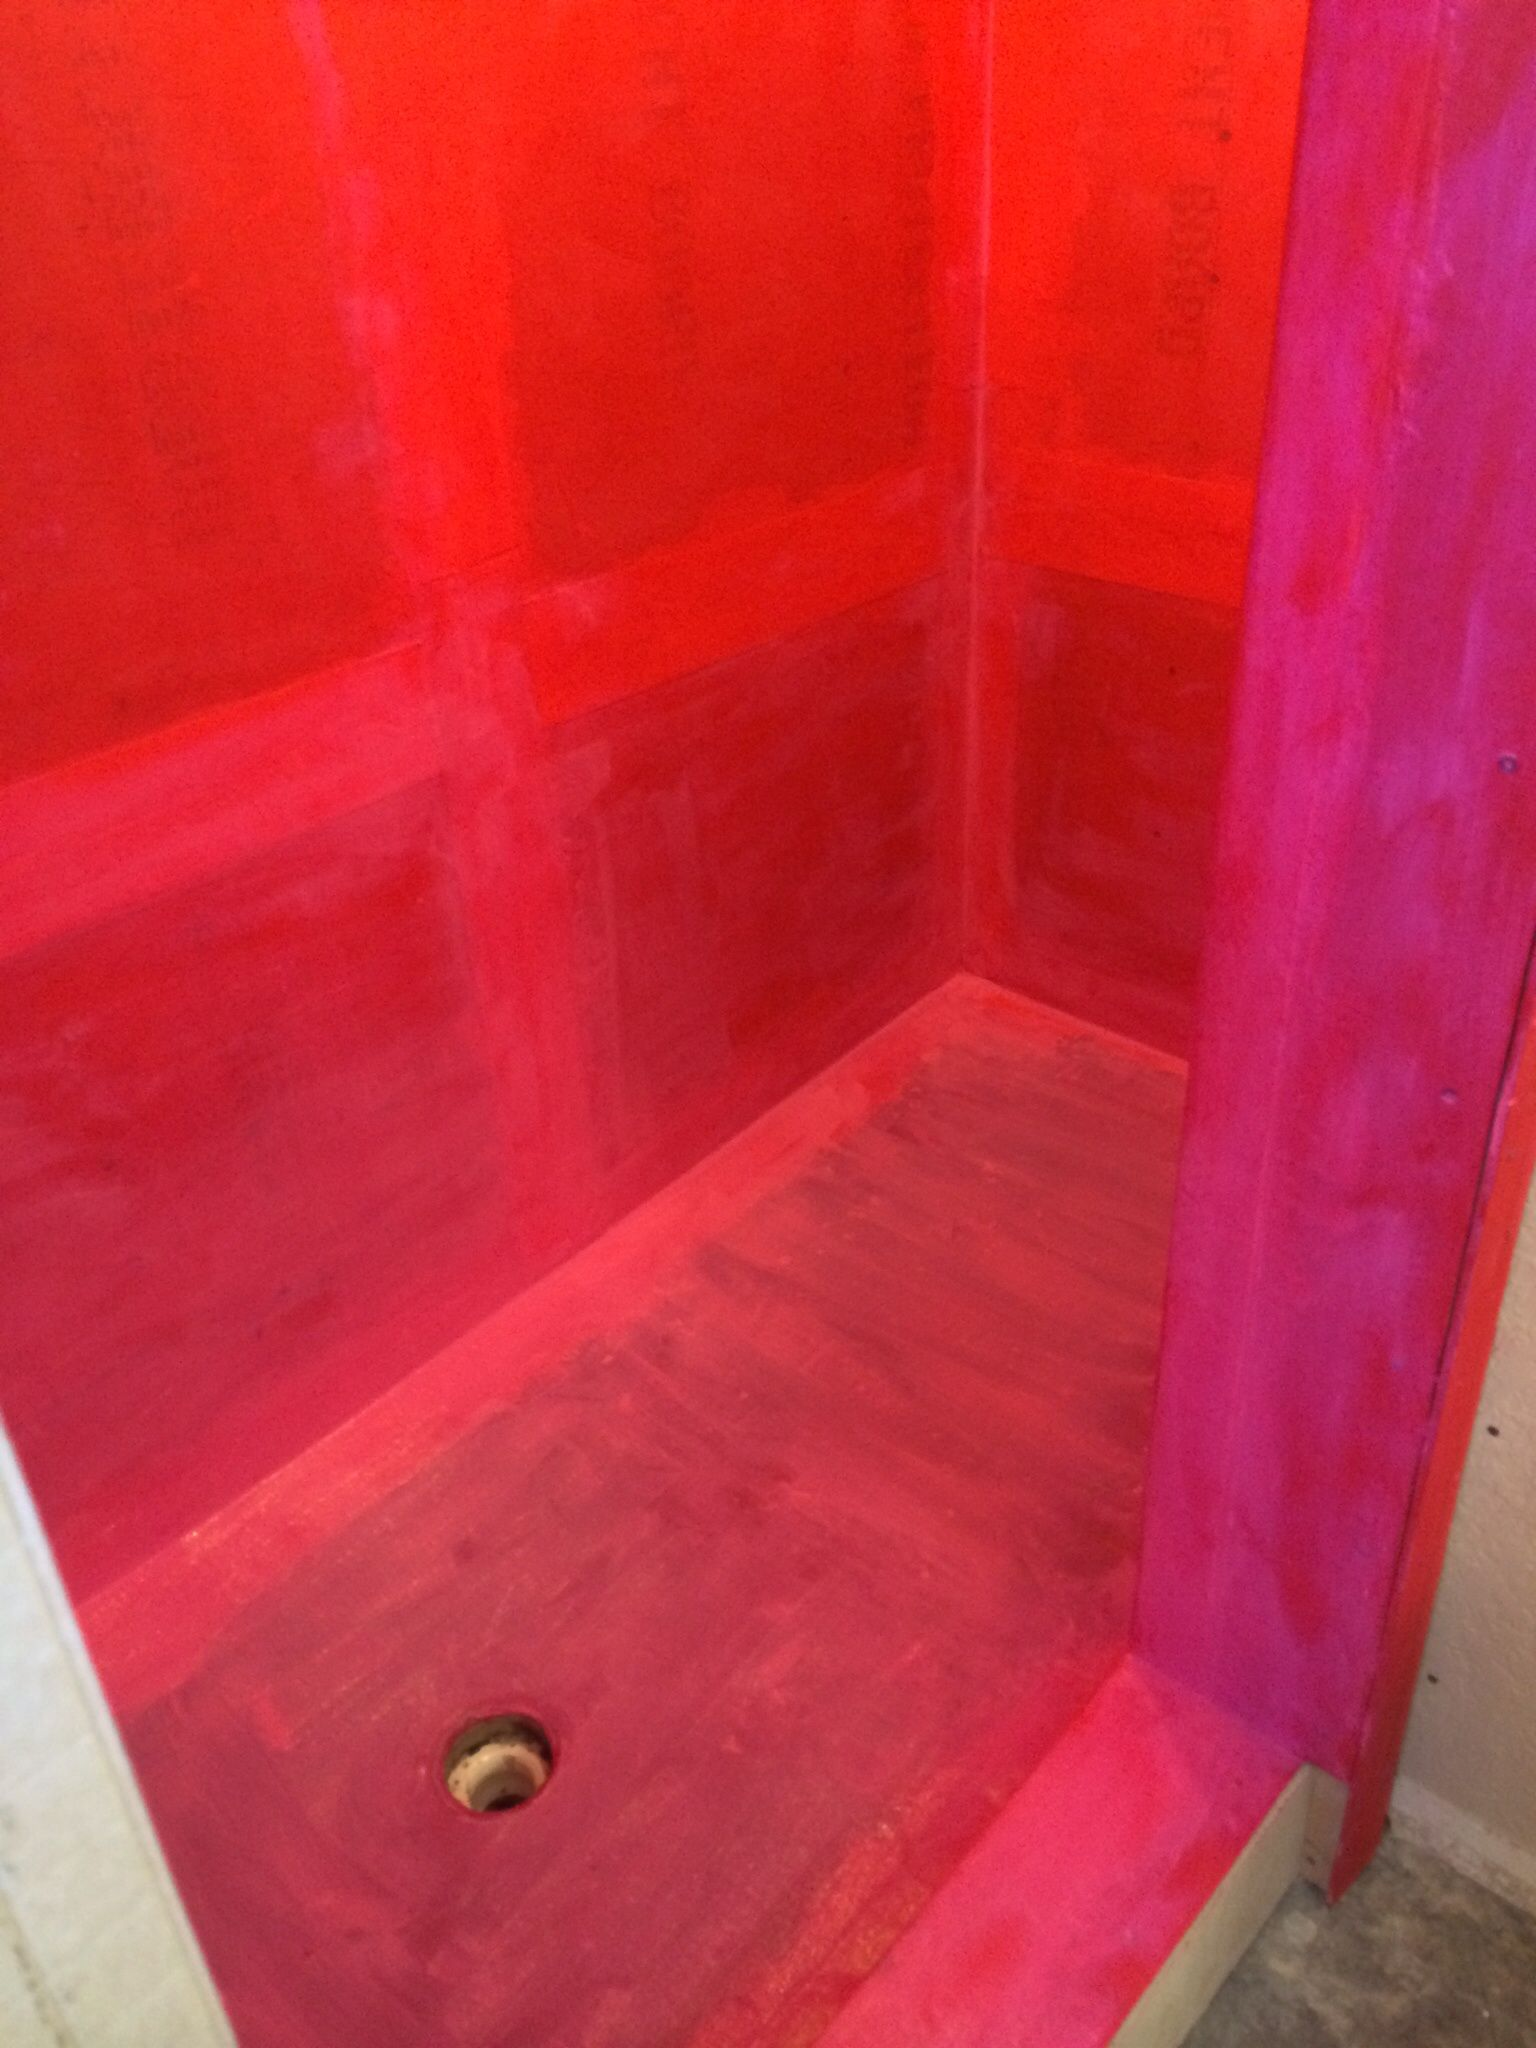 Expanded Shower Sealed With Red Guard Ready For Tile Bathroom Remodel Pinterest Tile